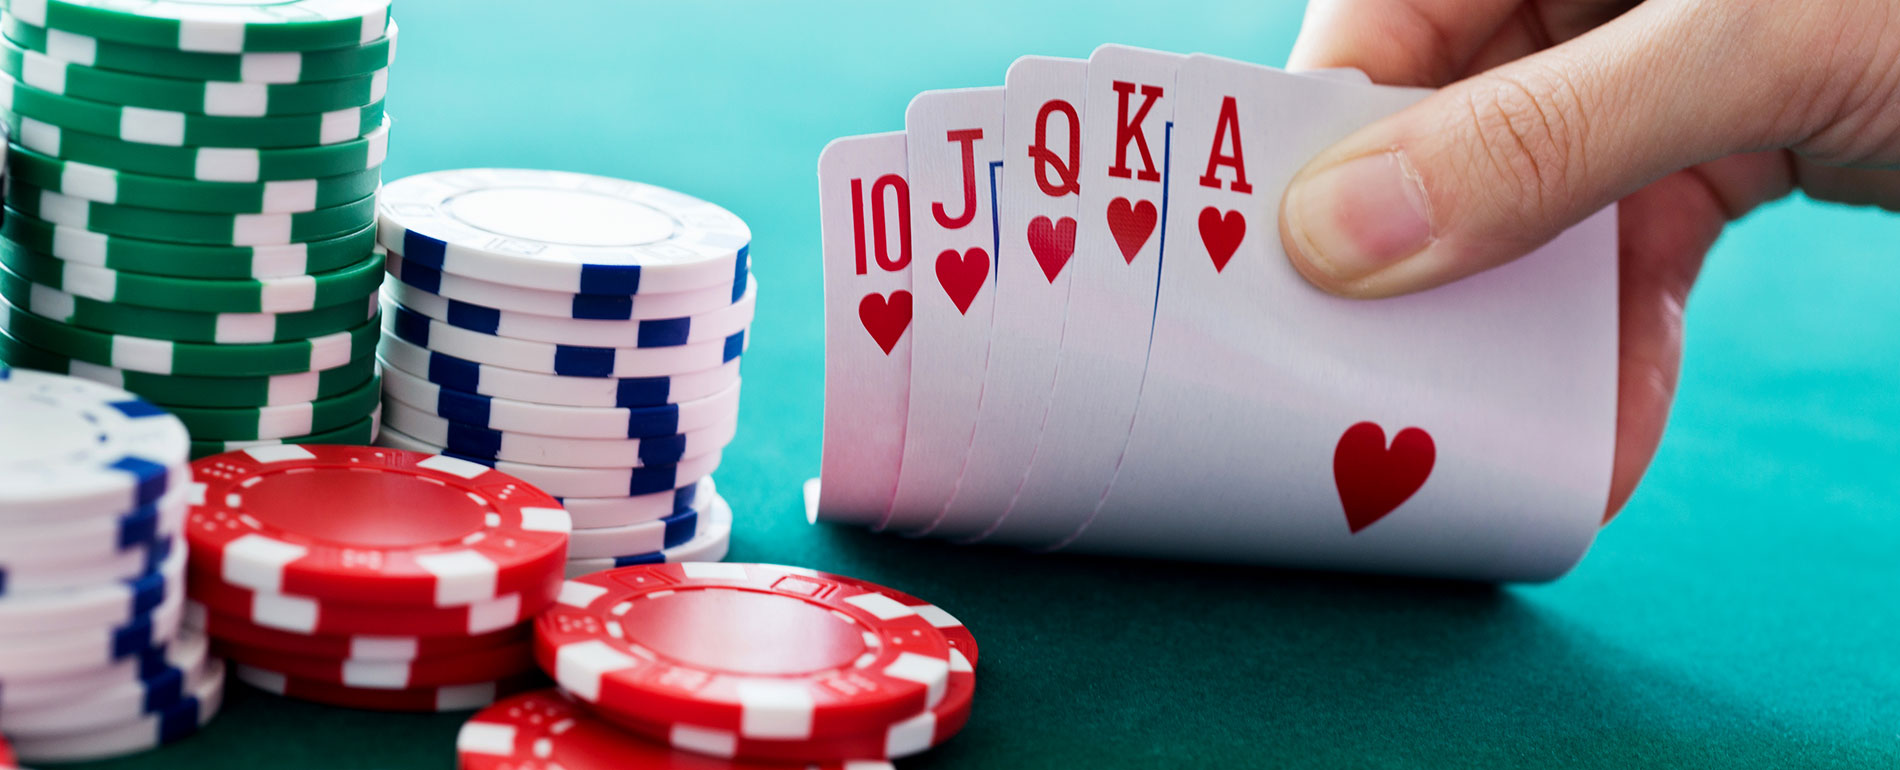 The dangers of online poker gambling through Android